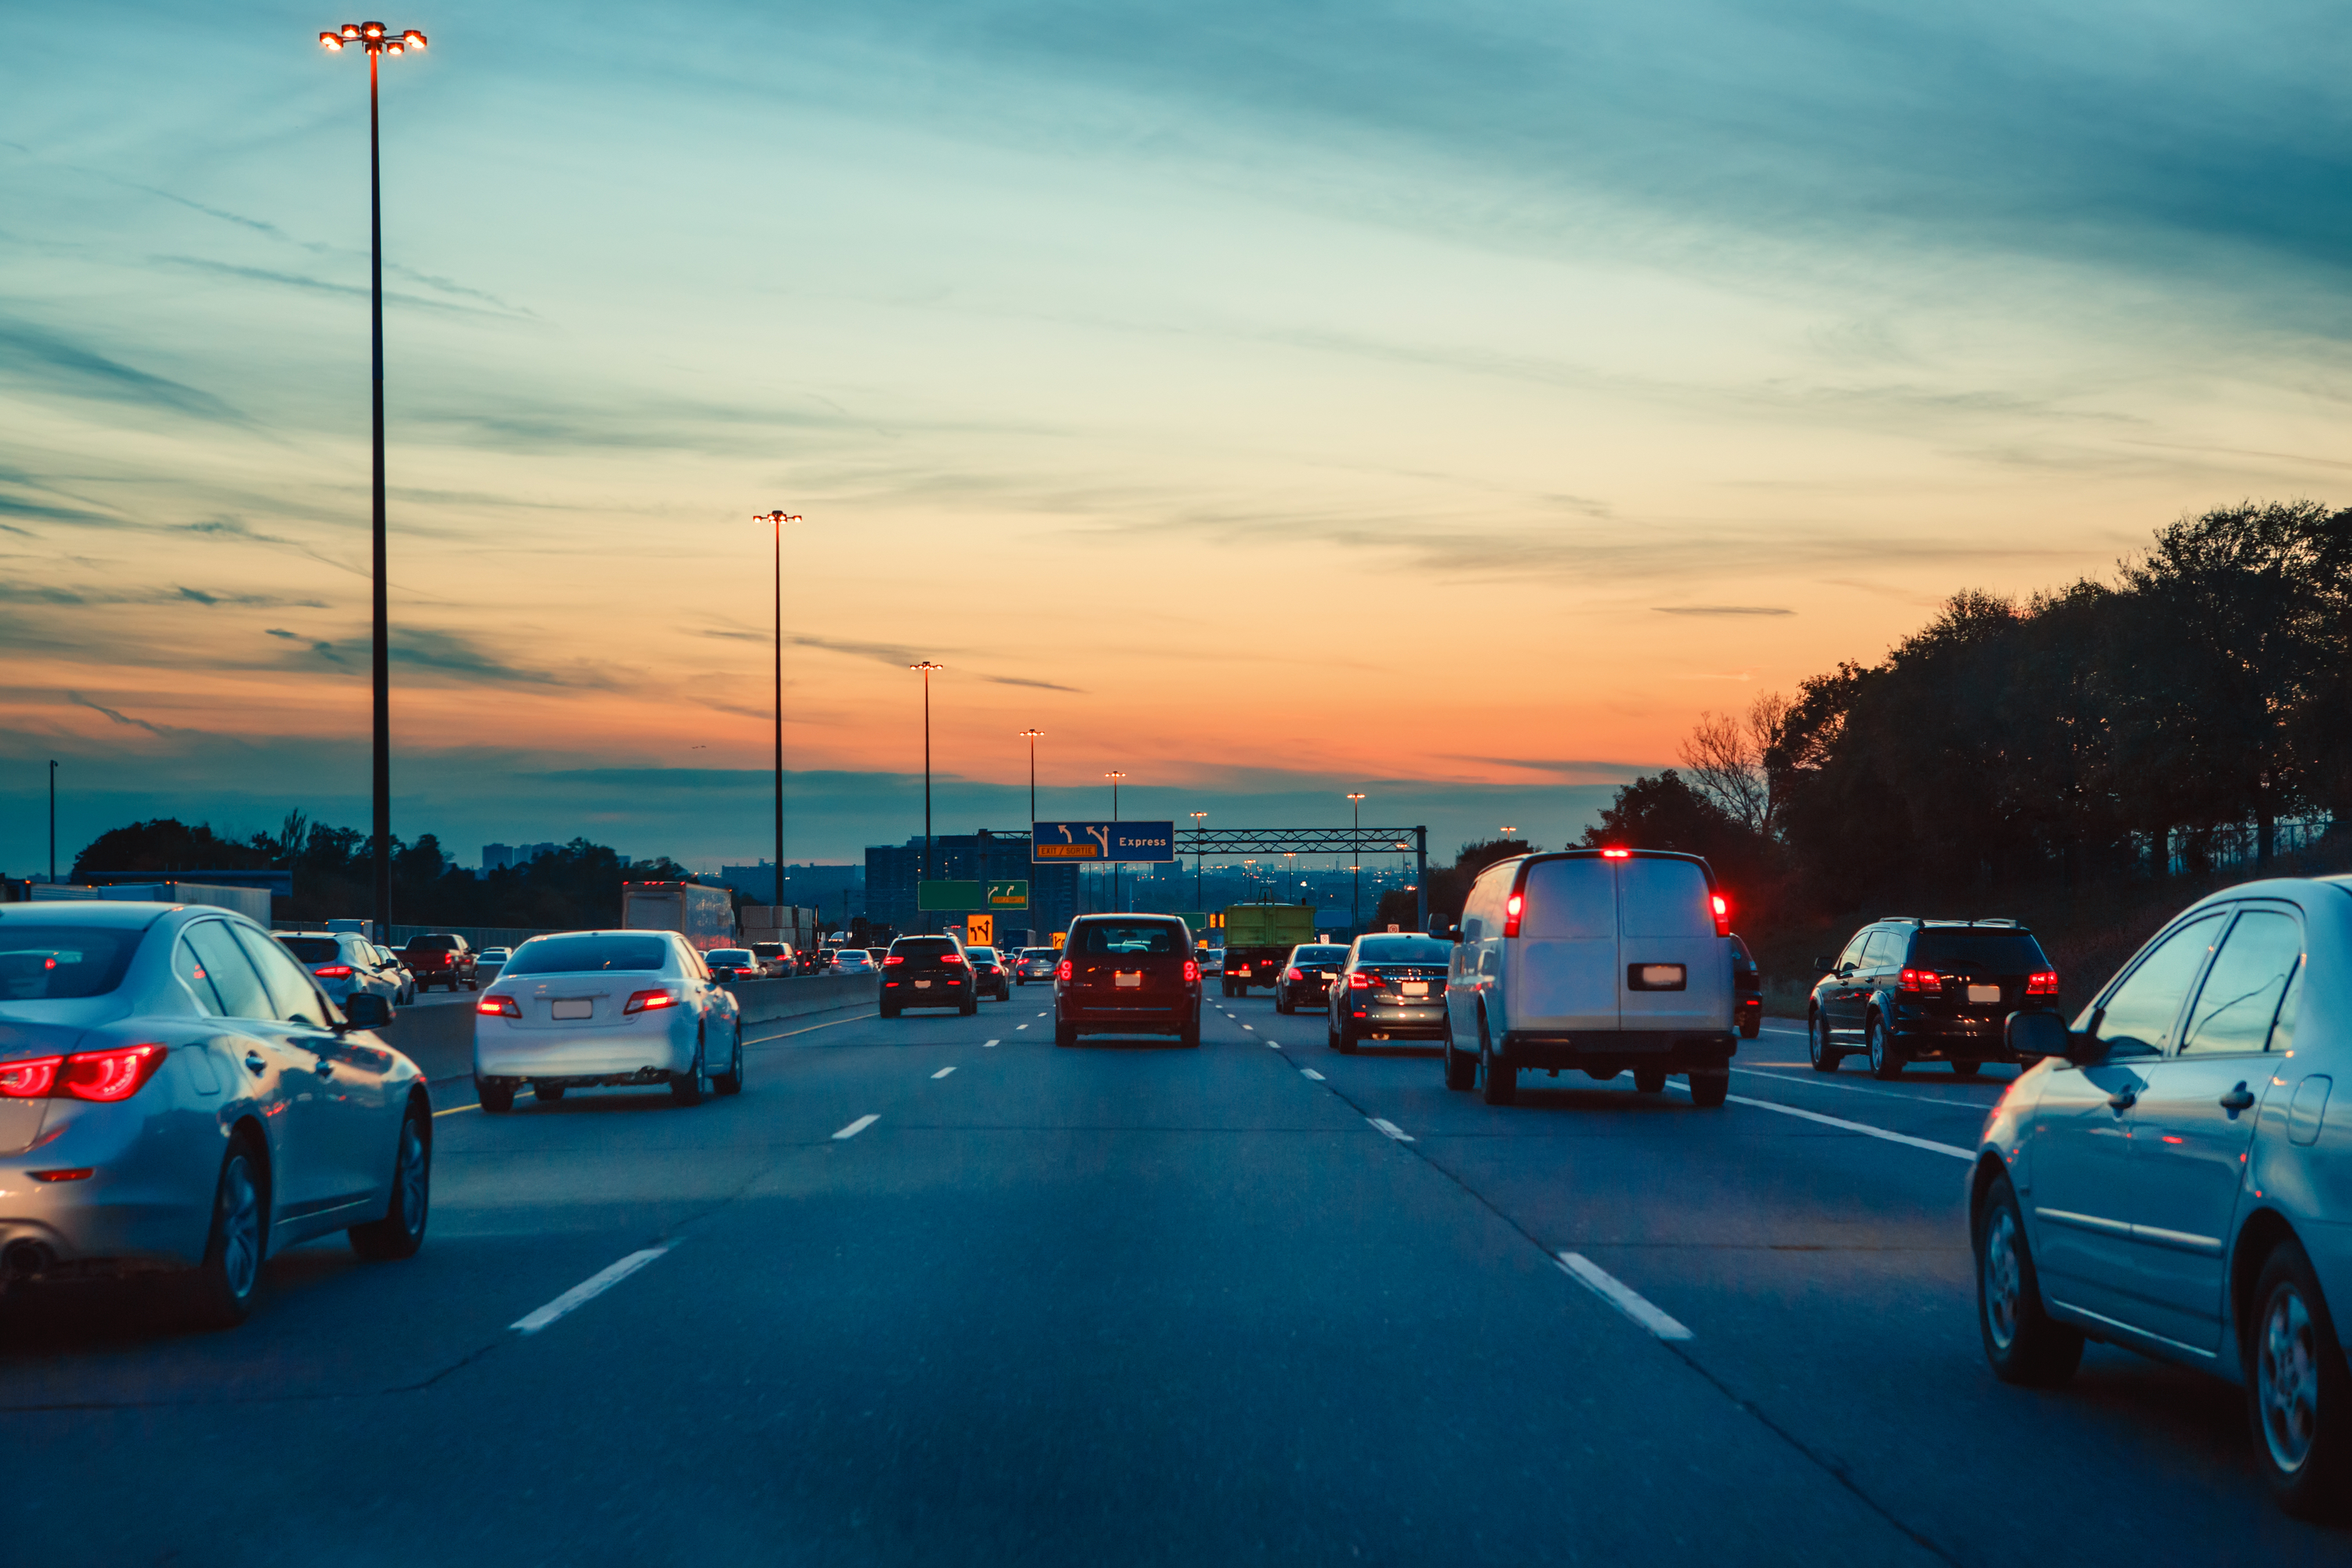 Road trips to see your family for Thanksgiving can be so stressful! We have some amazing Thanksgiving travel tips to ease a little stress during the holidays.